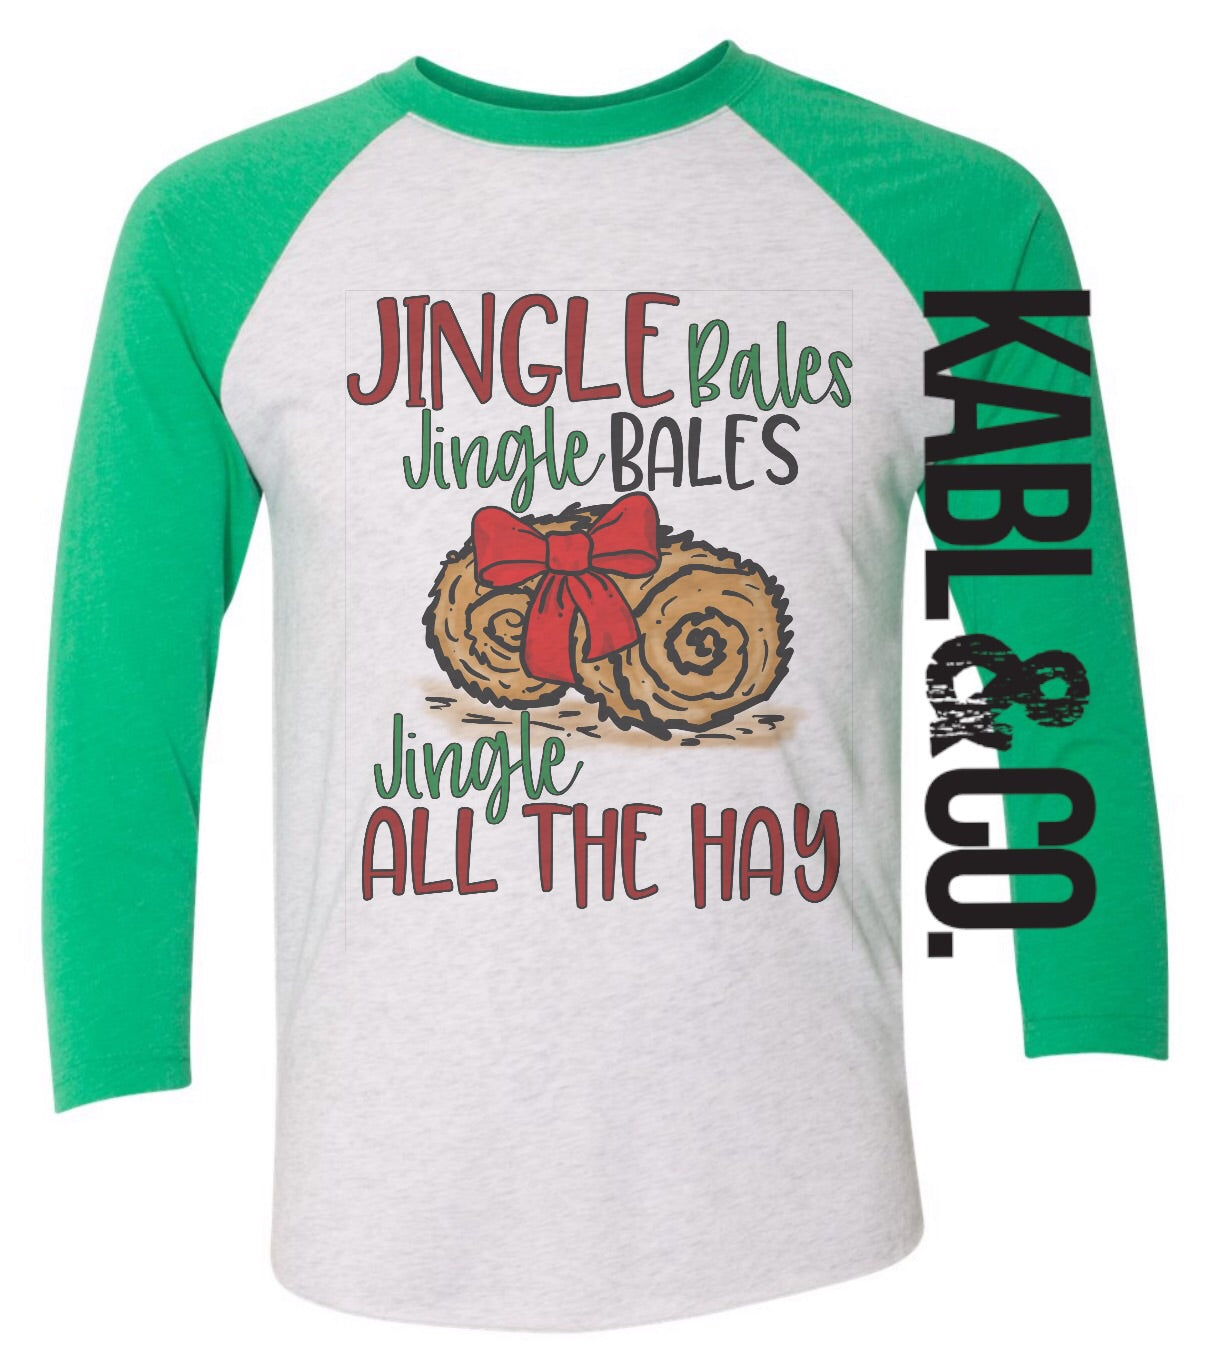 JINGLE BALES - Christmas